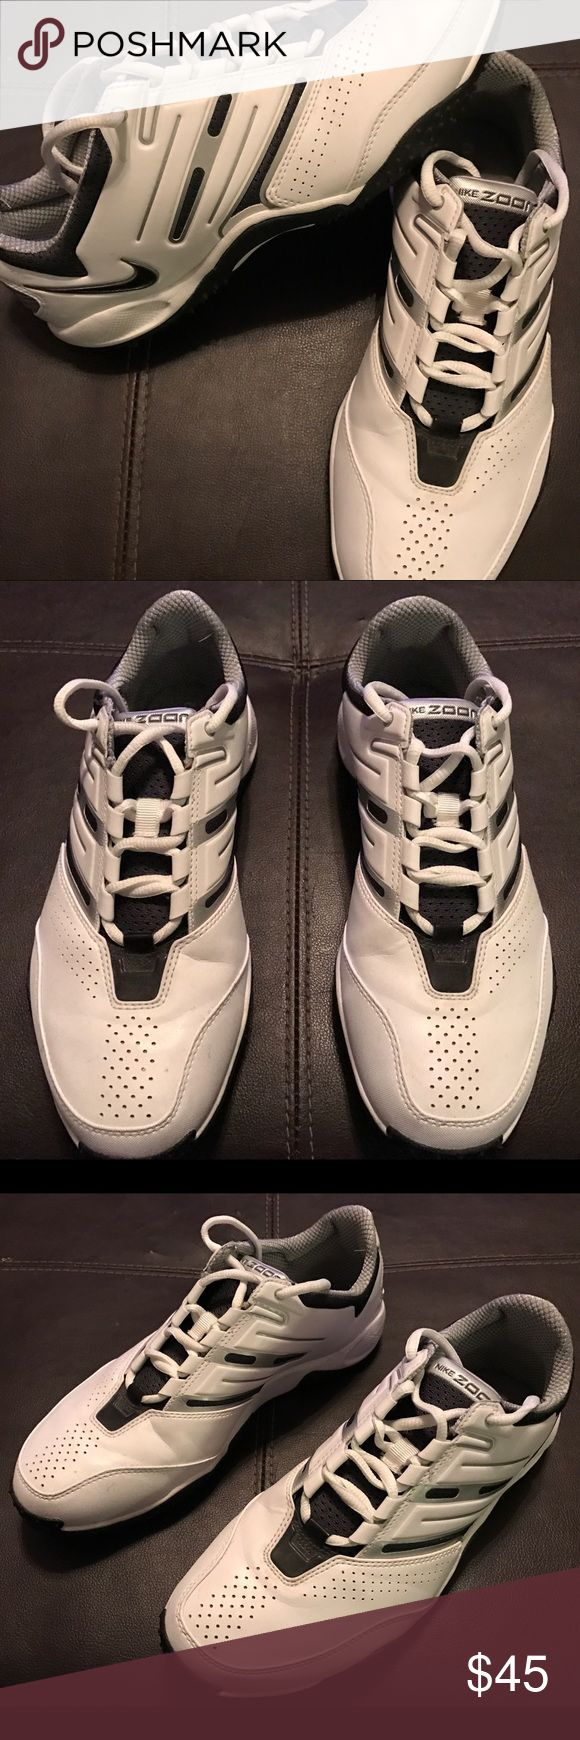 Men's Nike Zoom White Shoes - BRAND NEW Men's Nike Zoom shoes are brand new, never worn. Get new Nikes without breaking the bank NOW! 😉 Nike Shoes Athletic Shoes